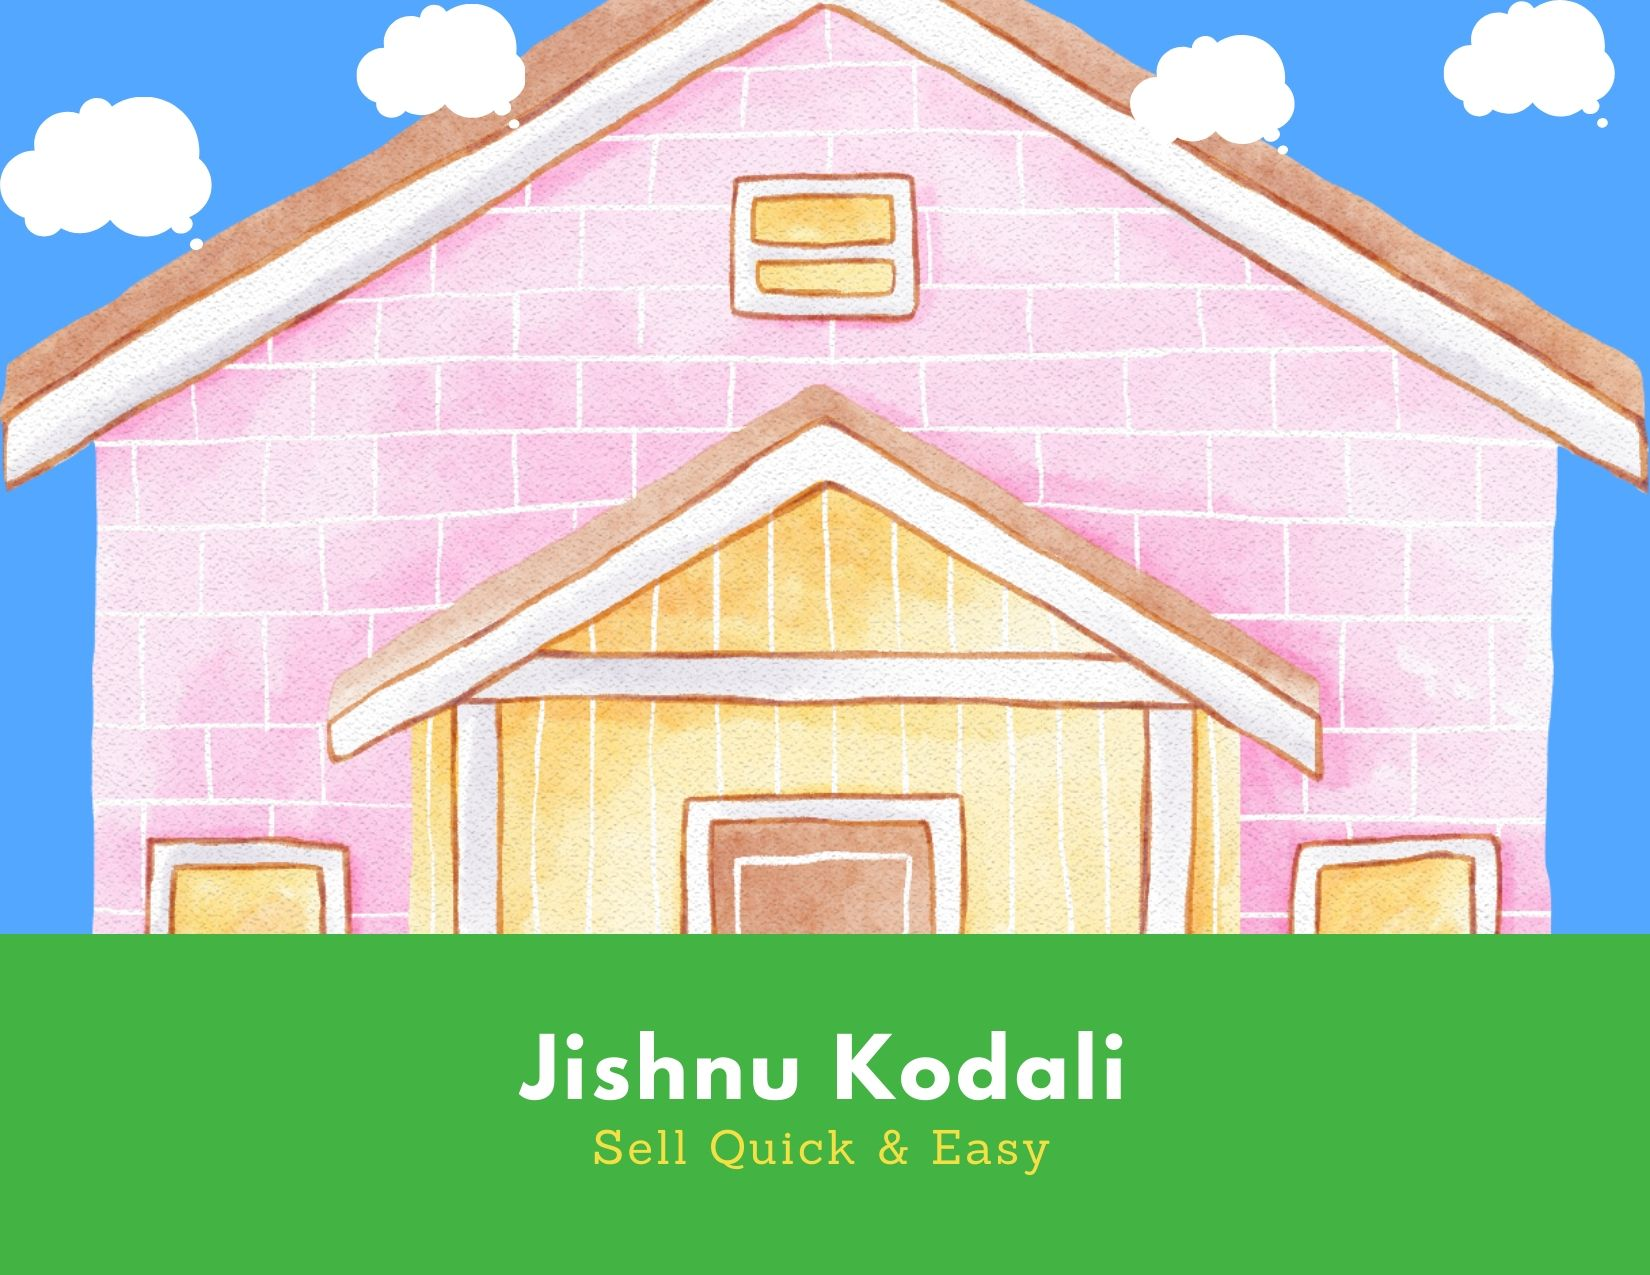 Jishnu Kodali UBS- Your Real Estate Advisor